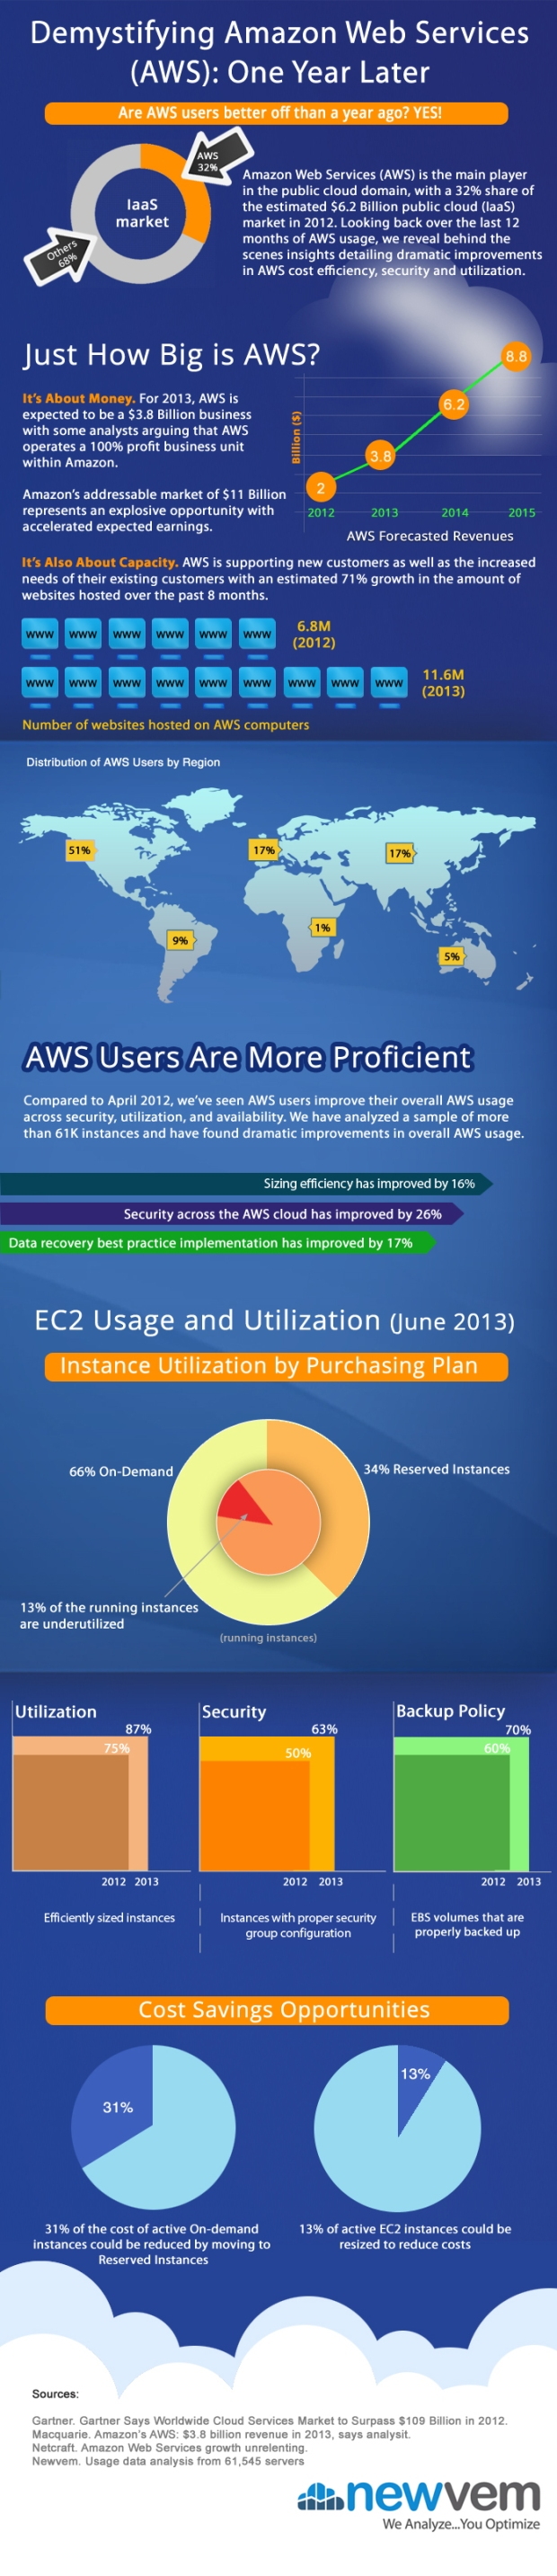 aws-cloud-usage-improvements-one-year-later